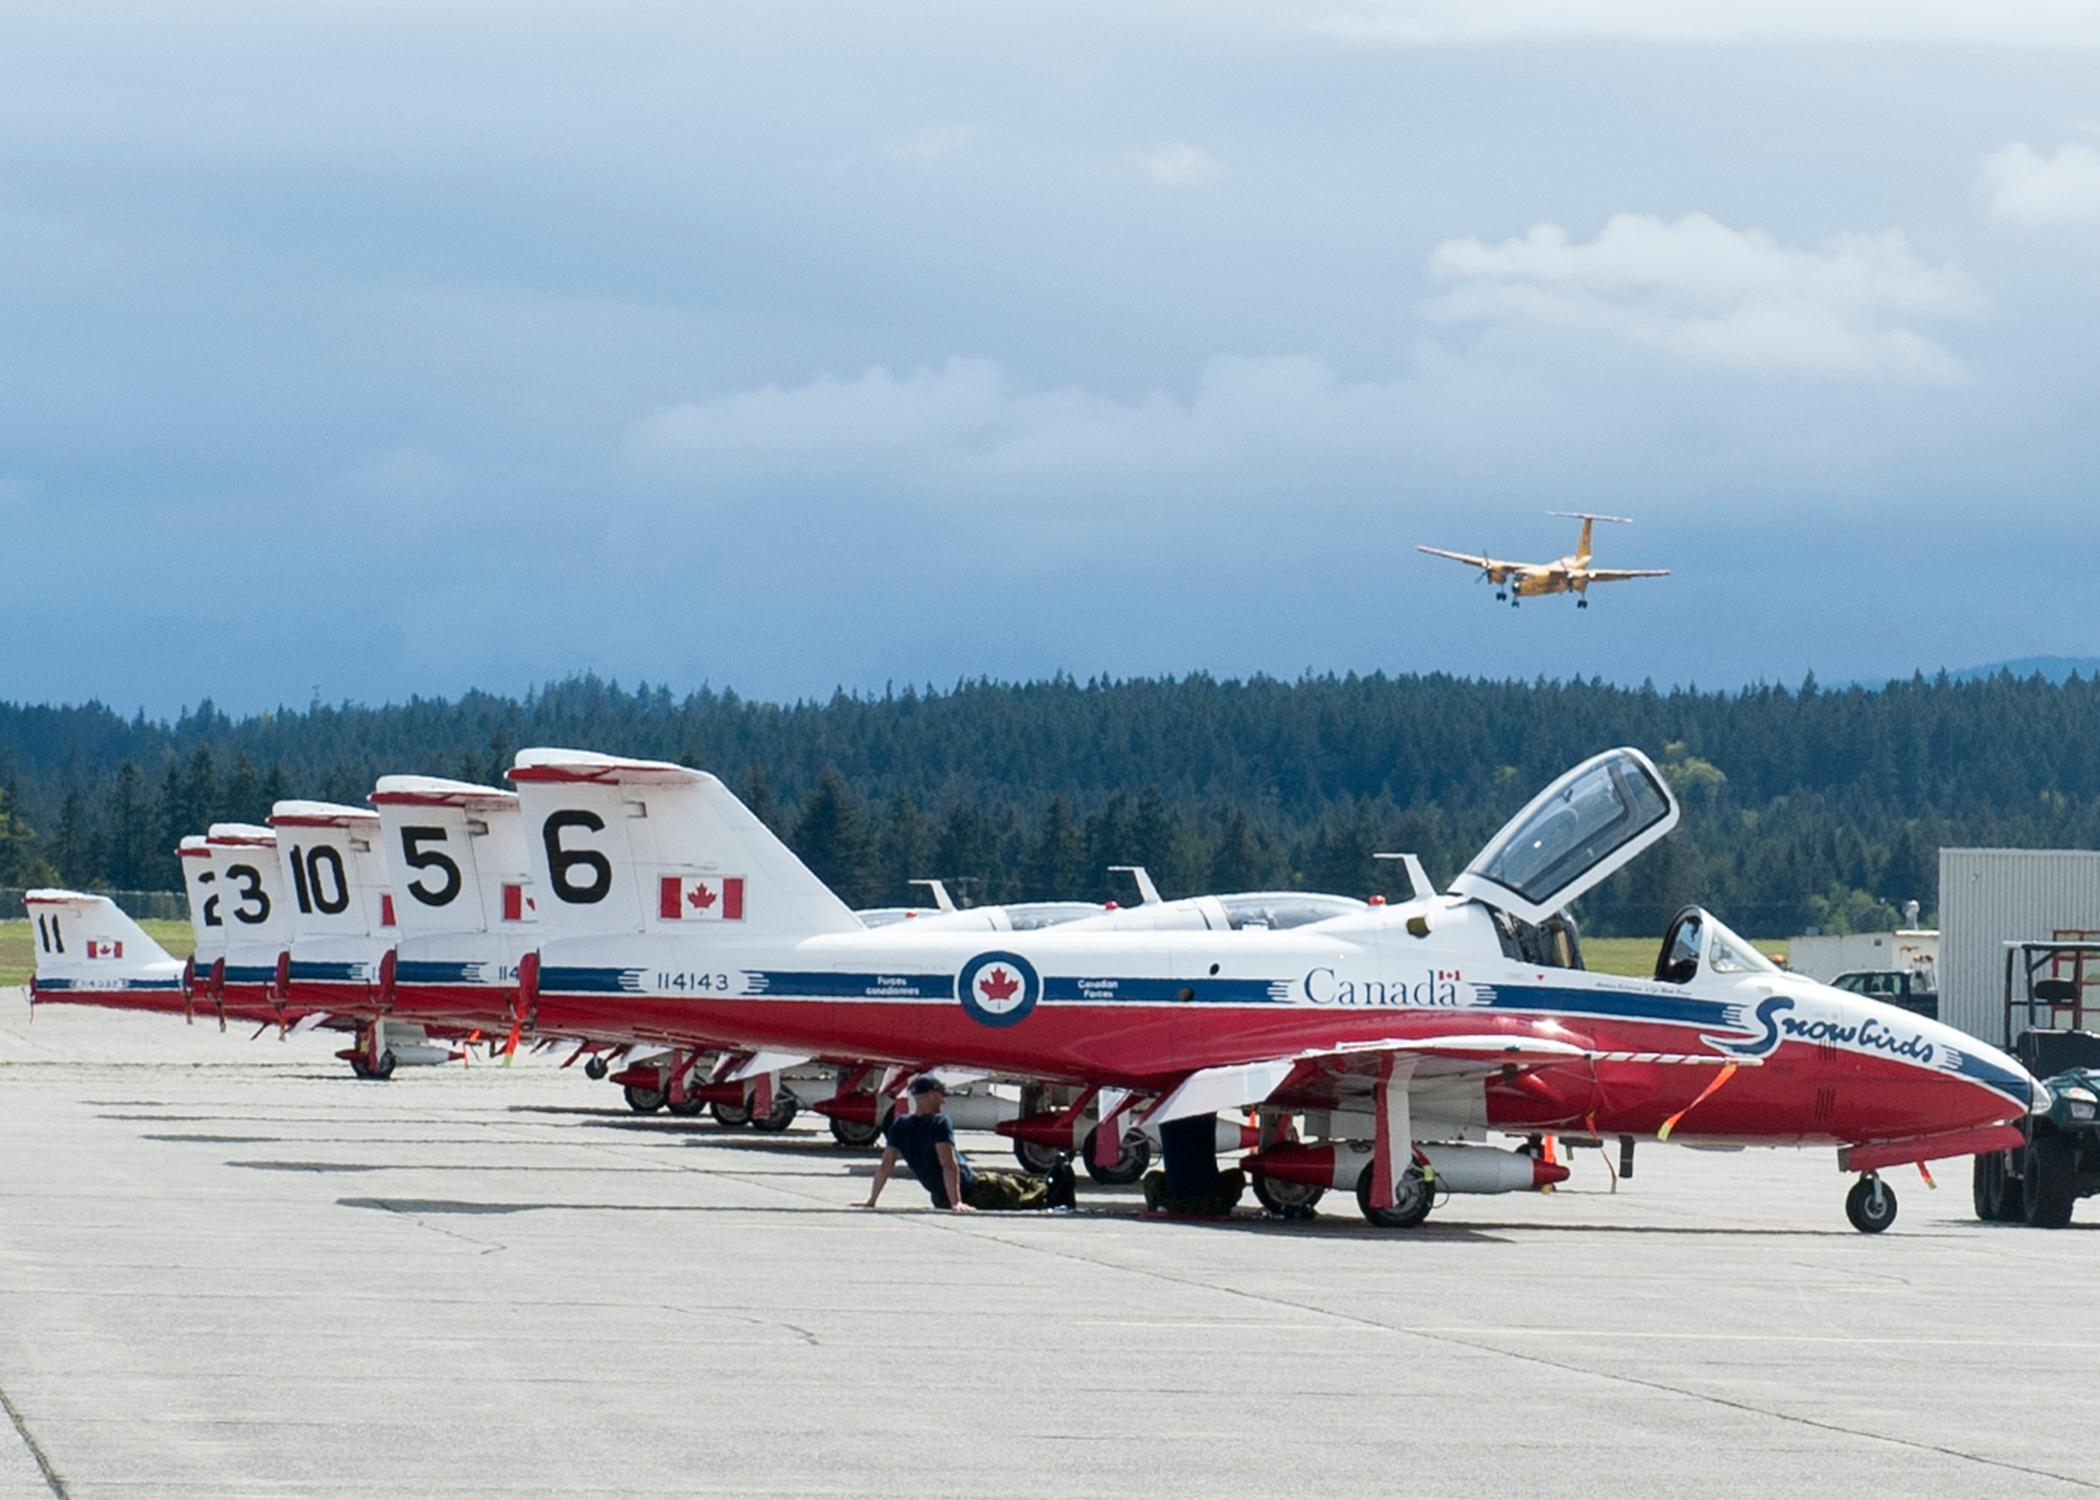 CX2015-0110-18CT-114 Snowbirds sit on the tarmac as a CT-115 Buffalo aircraft  lands at 19 Wing Comox.The Canadian Armed Forces (CAF) Snowbirds (431 Air Demonstration Squadron) and The CAF CF-188 Hornet Demonstration Team are deployed to 19 Wing Comox, British Columbia, to complete training prior to the start of the 2015 Air Show season from the 15 to the 30 April 2015.Image: Sgt Halina Folfas, 19 Wing ImagingCX2015-0110-18Des avions CT-114 Snowbird attendent sur laire de trafic pendant qu'un avion CT-115 Buffalo atterit  la 19e Escadre.Les Snowbirds (431e Escadron de dmonstration arienne) des Forces armes canadiennes (FAC) et l?quipe de dmonstration de chasseurs CF188 Hornet sont dploys  la 19e Escadre Comox (Colombie-Britannique) pour effectuer une sance dentranement avant le dbut de la saison des spectacles ariens 2015, qui aura lieu du 15 au 30 avril 2015.Image: Sgt Halina Folfas, Imagerie de la 19e Escadre